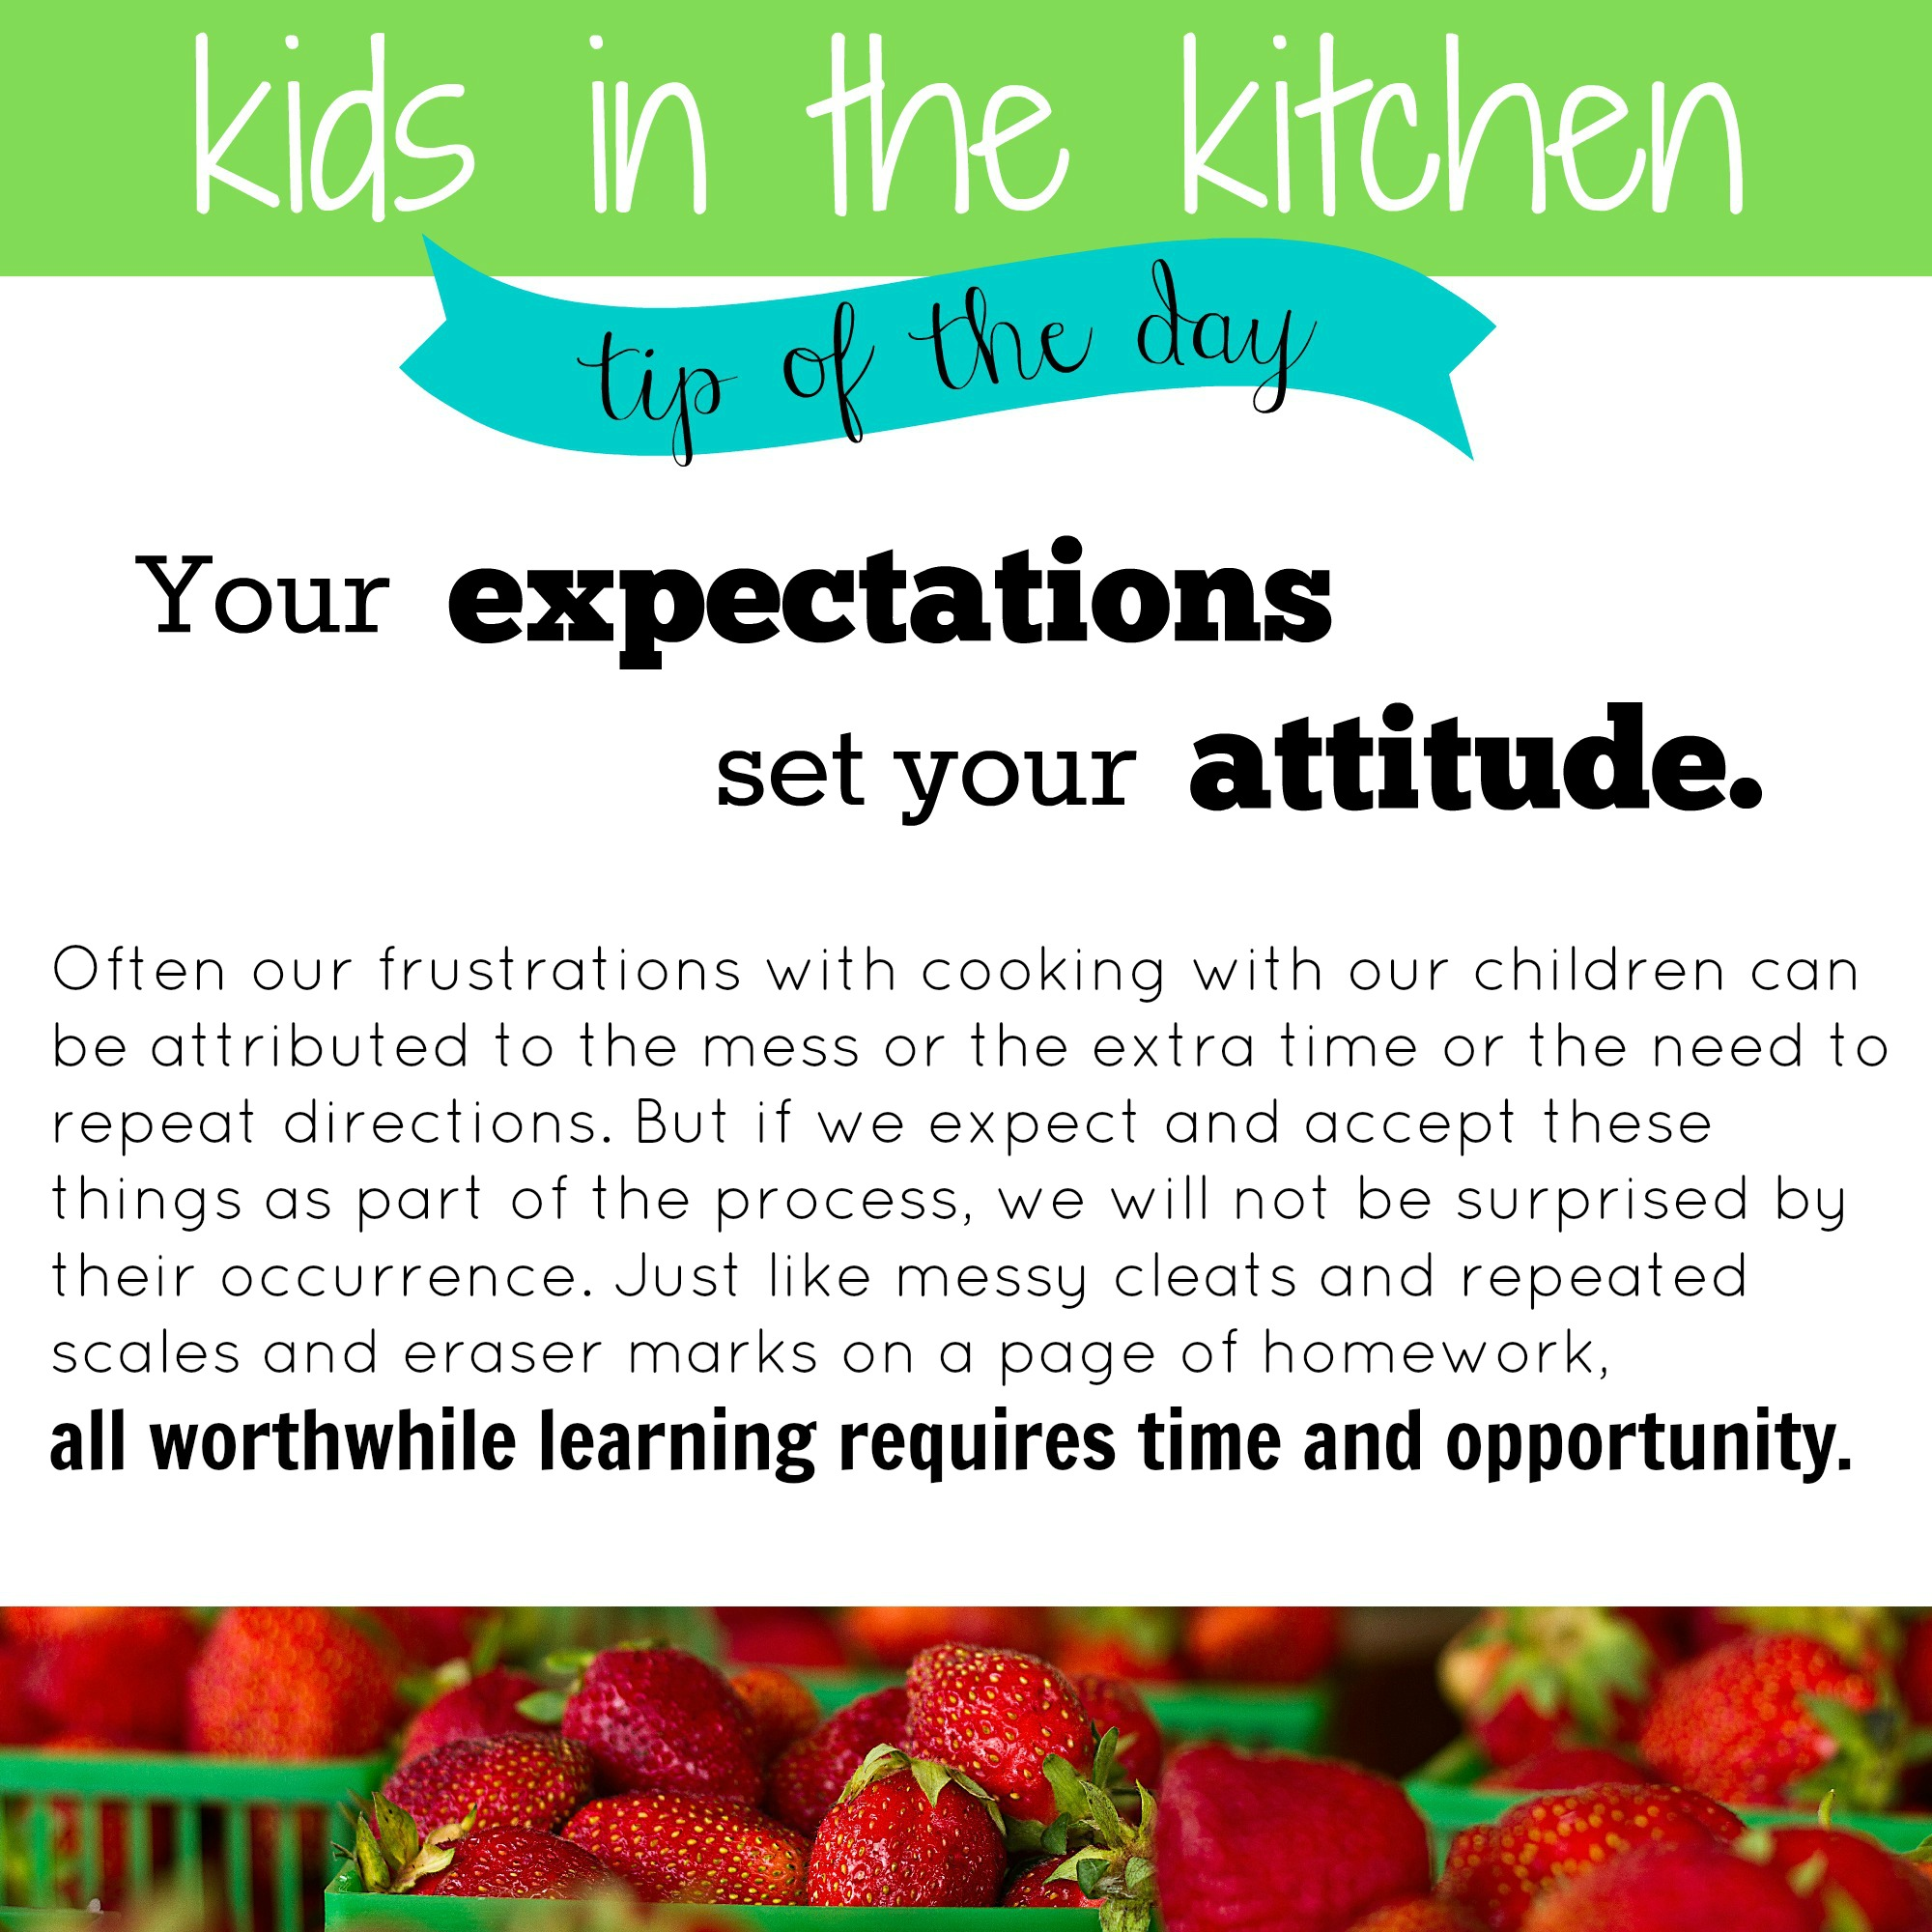 Kids in the Kitchen: Tip of the Day 1